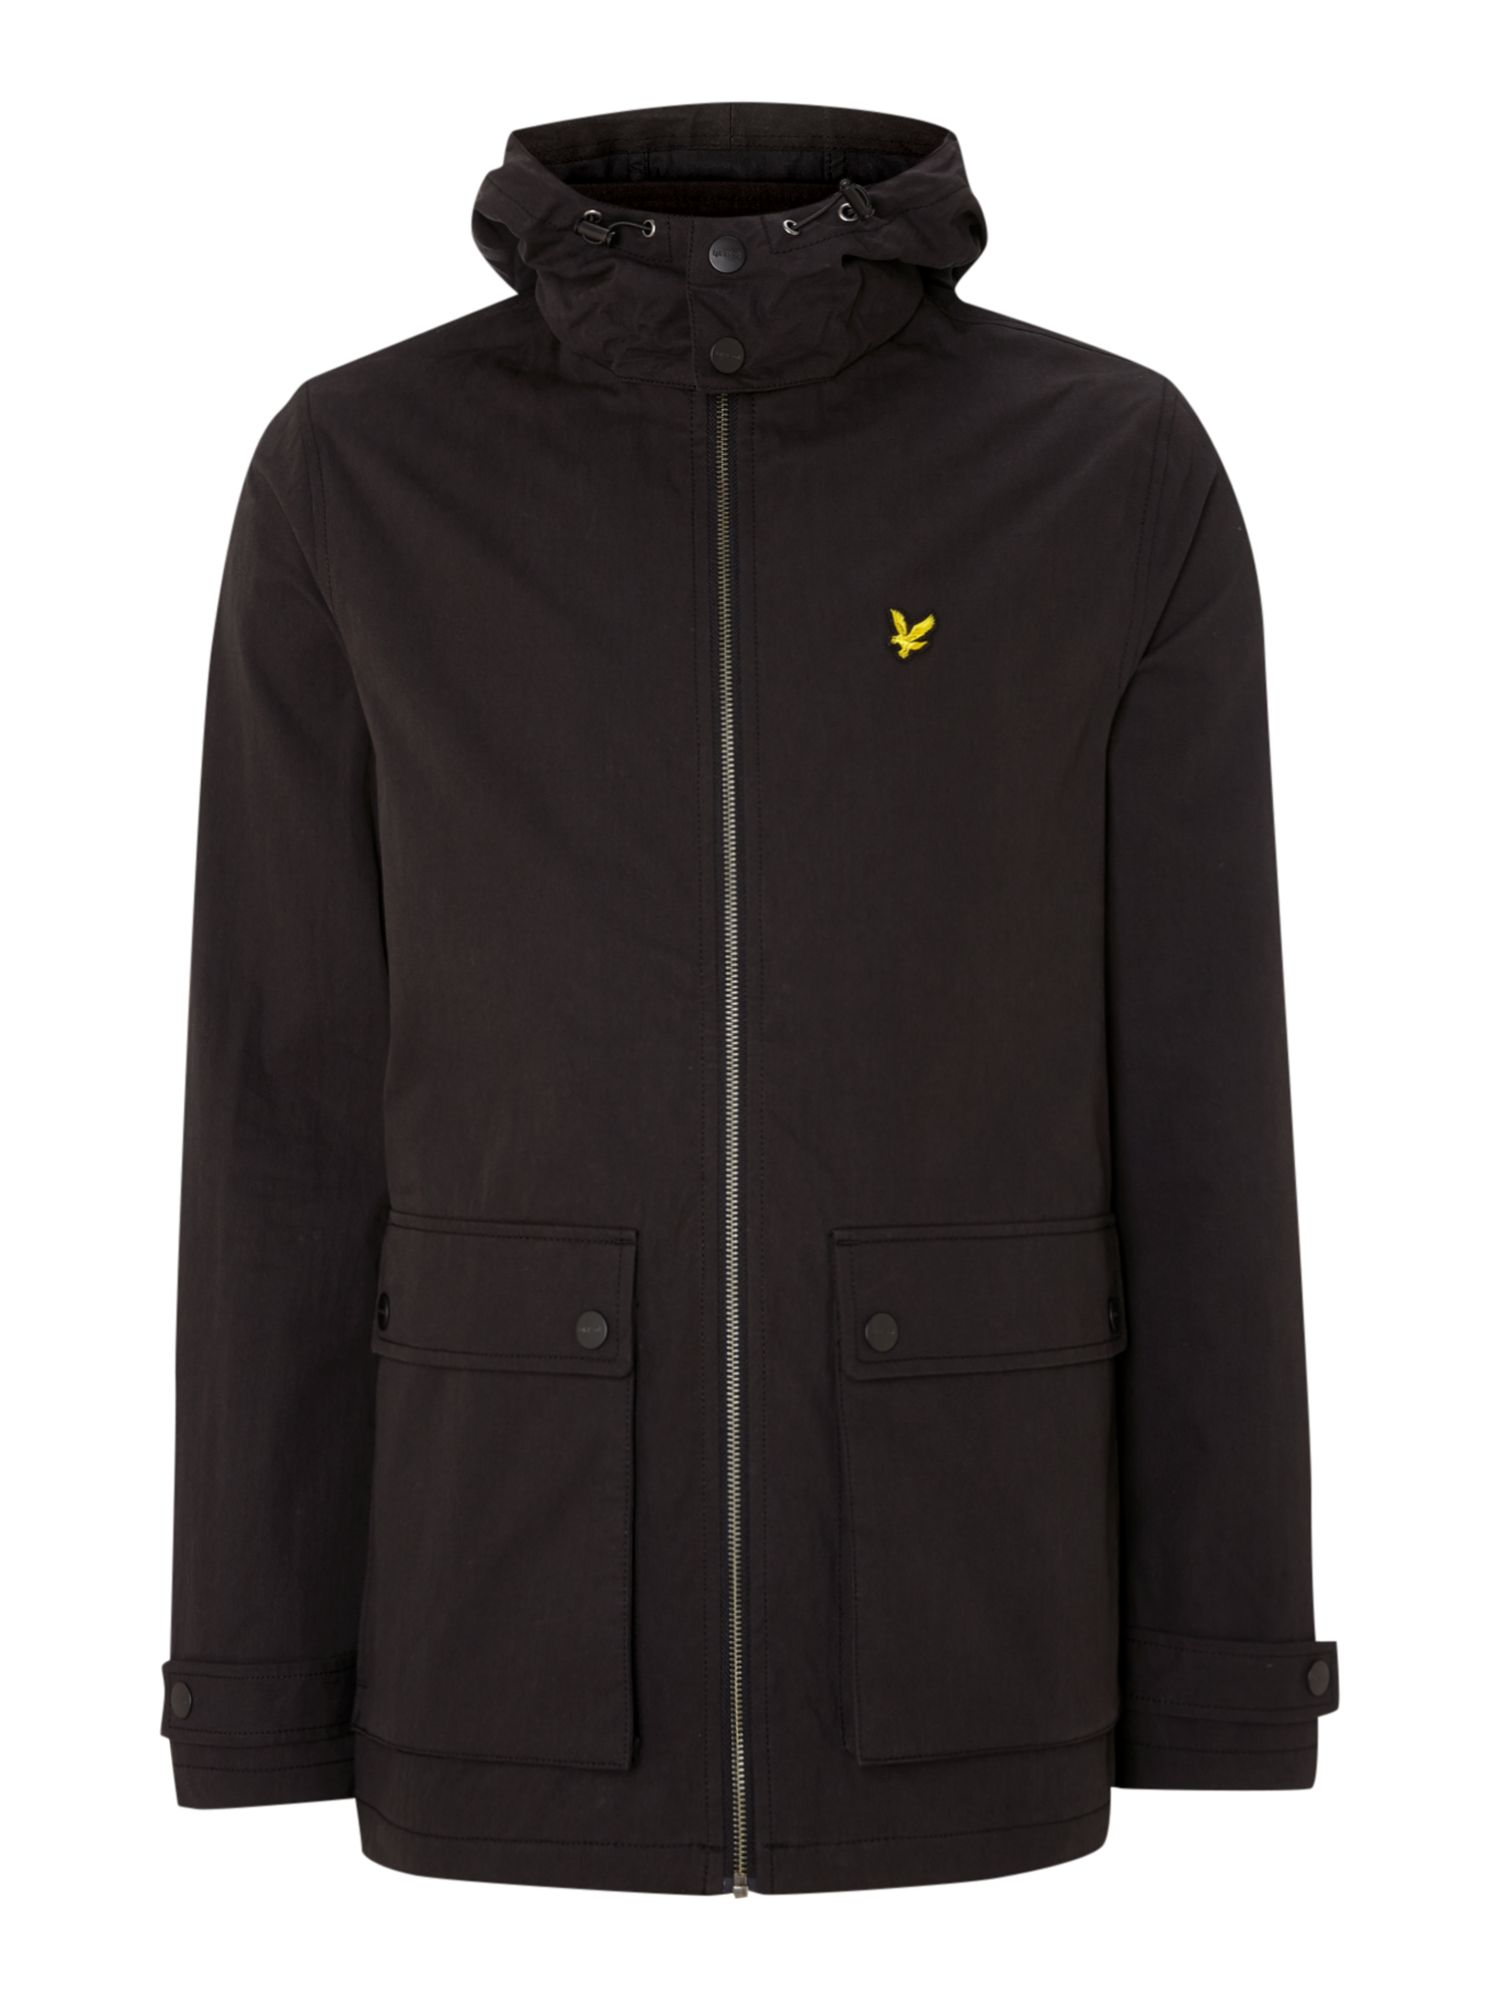 Mens Lyle and Scott Microfleece lined jacket Black